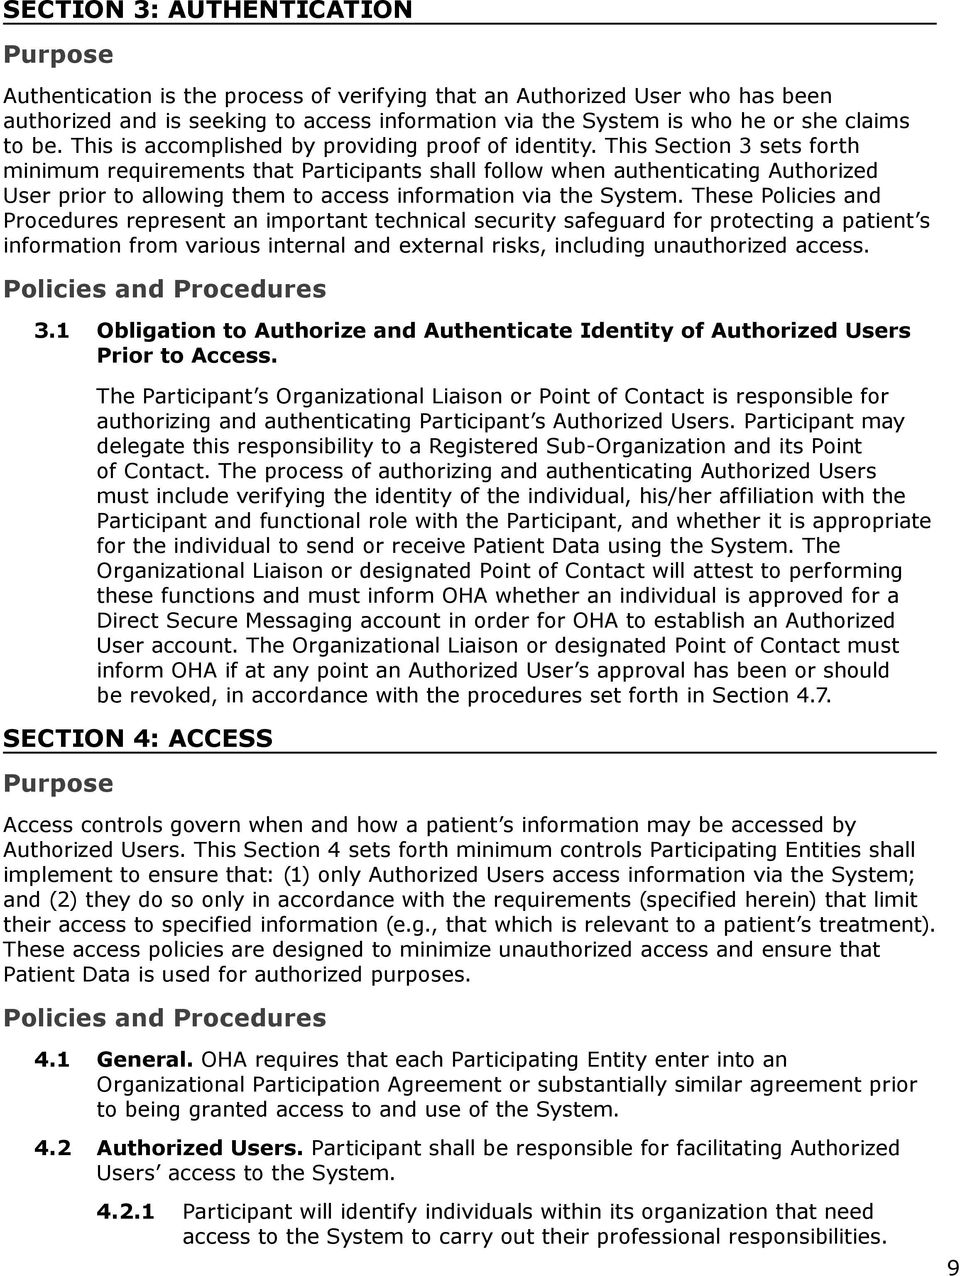 This Section 3 sets forth minimum requirements that Participants shall follow when authenticating Authorized User prior to allowing them to access information via the System.